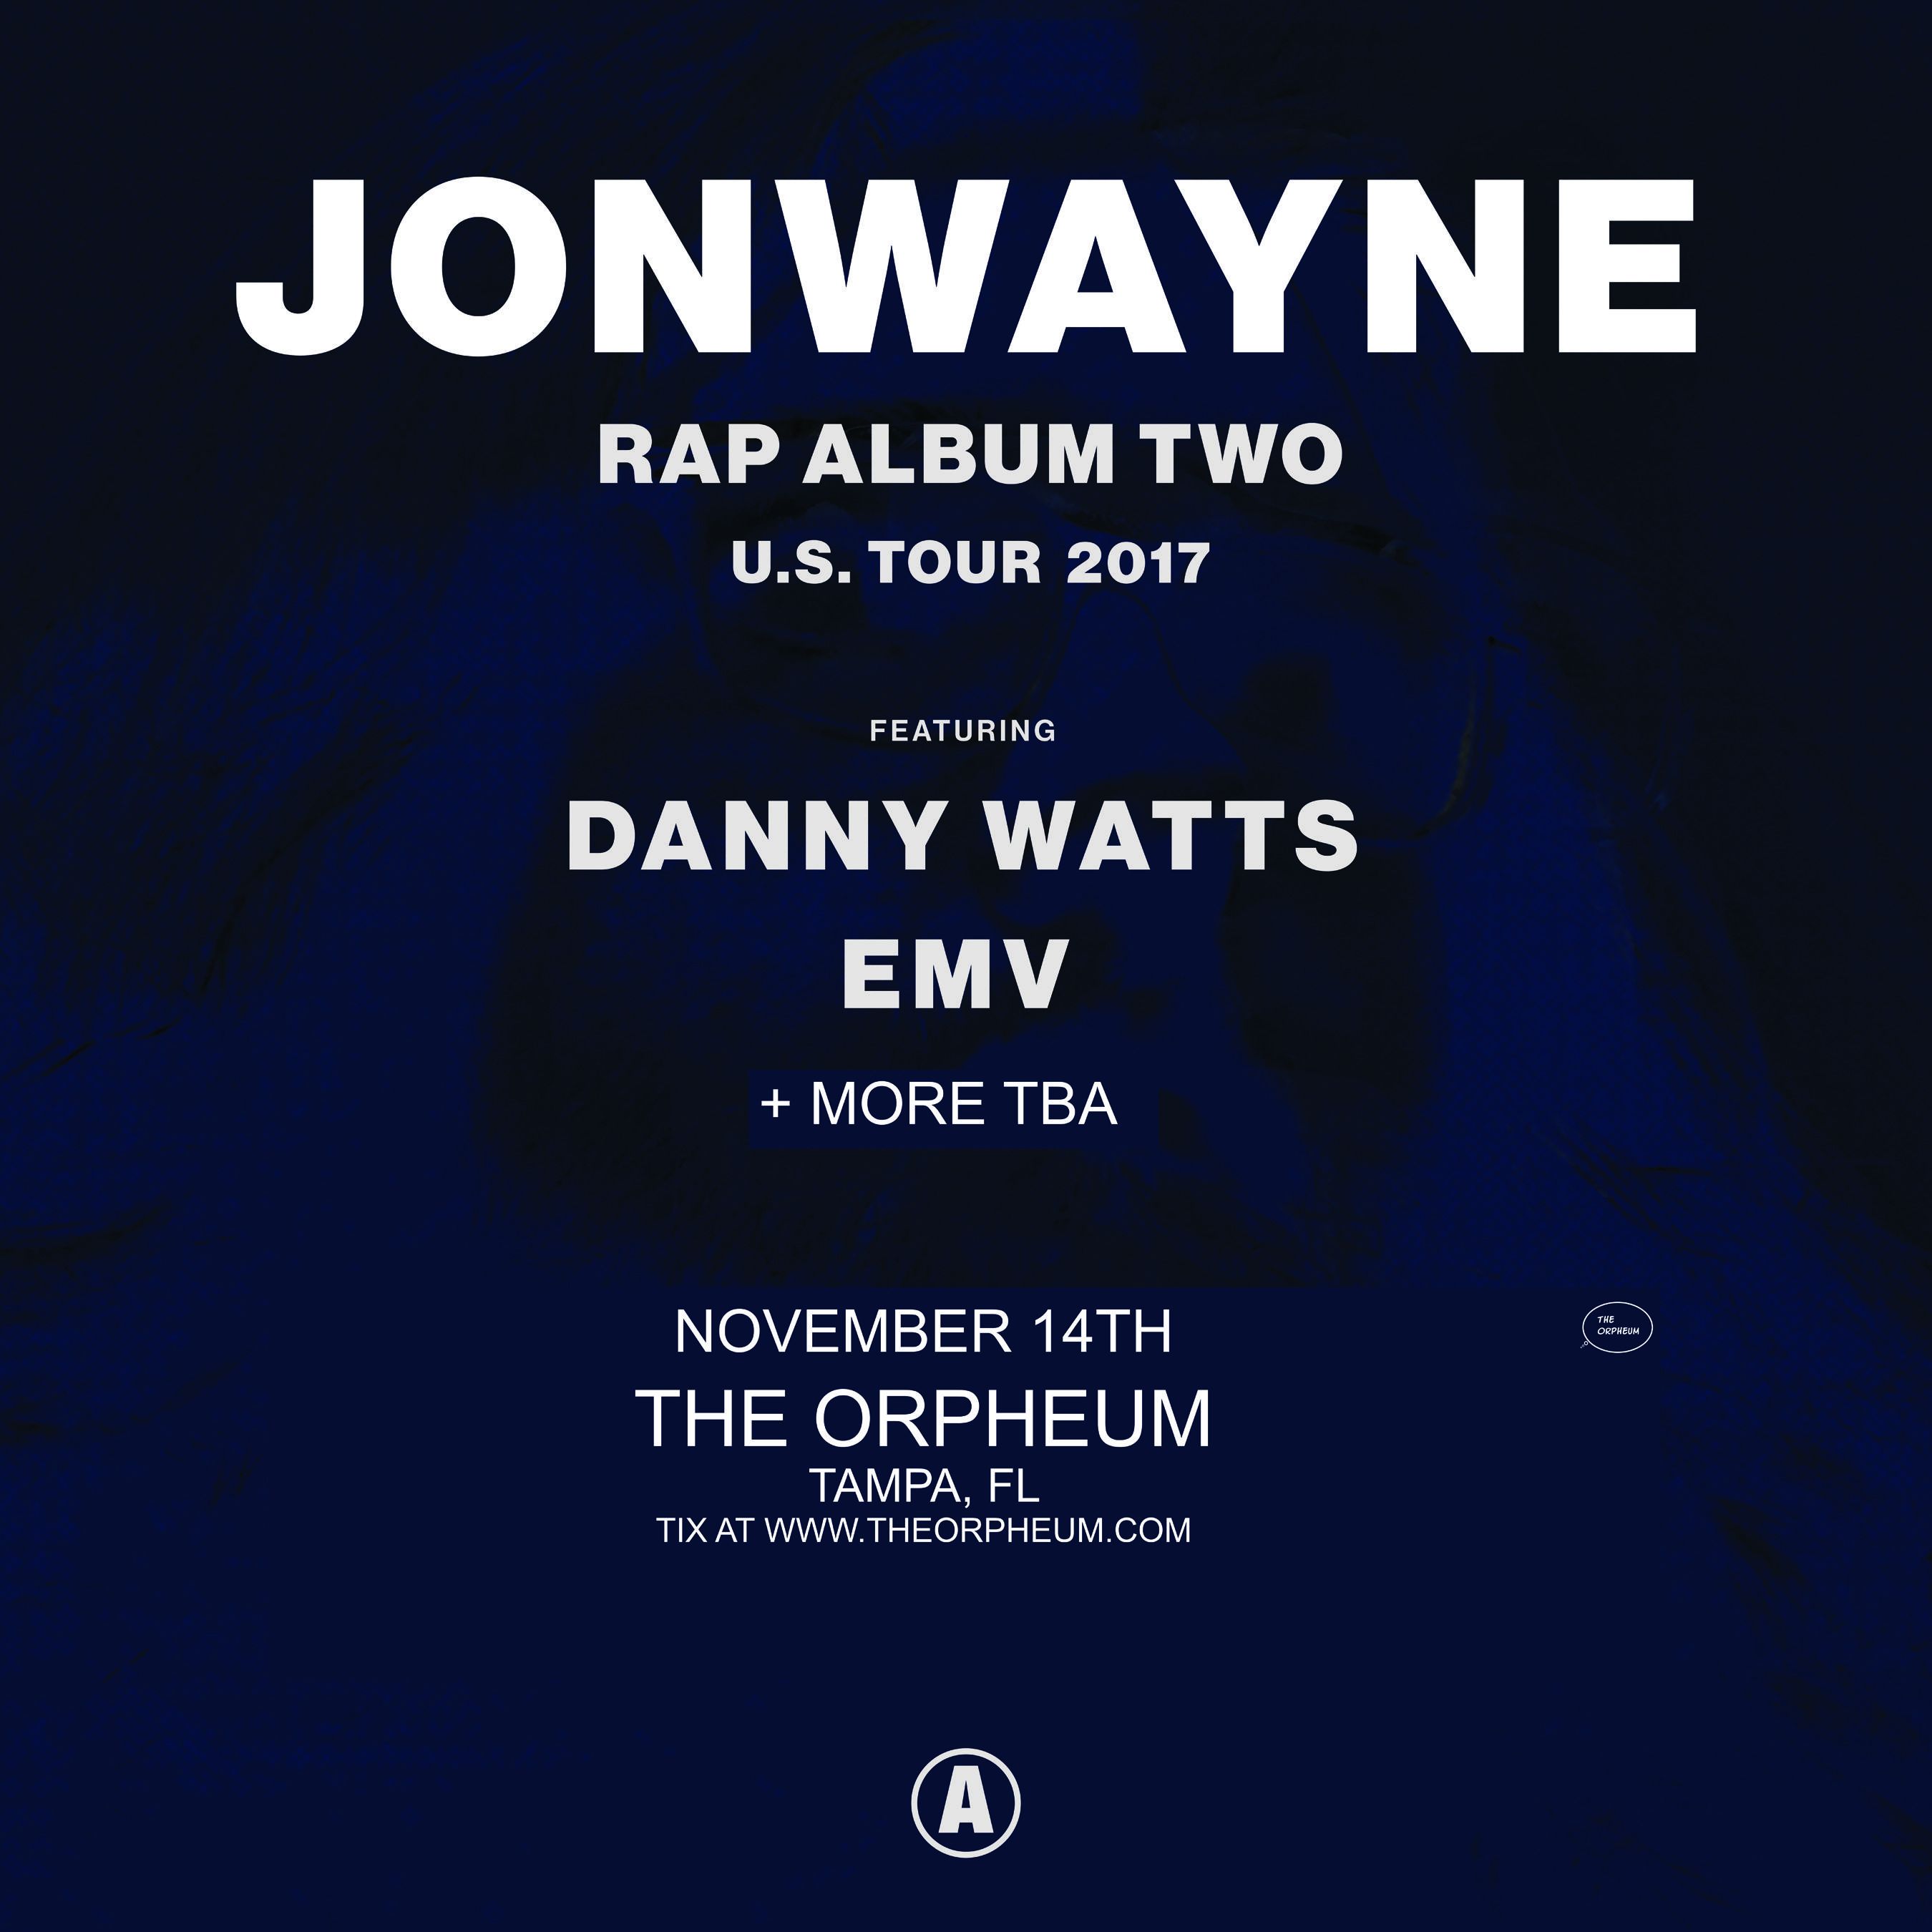 Hip hop radio stations in tampa fl - Jonwayne The Orpheum